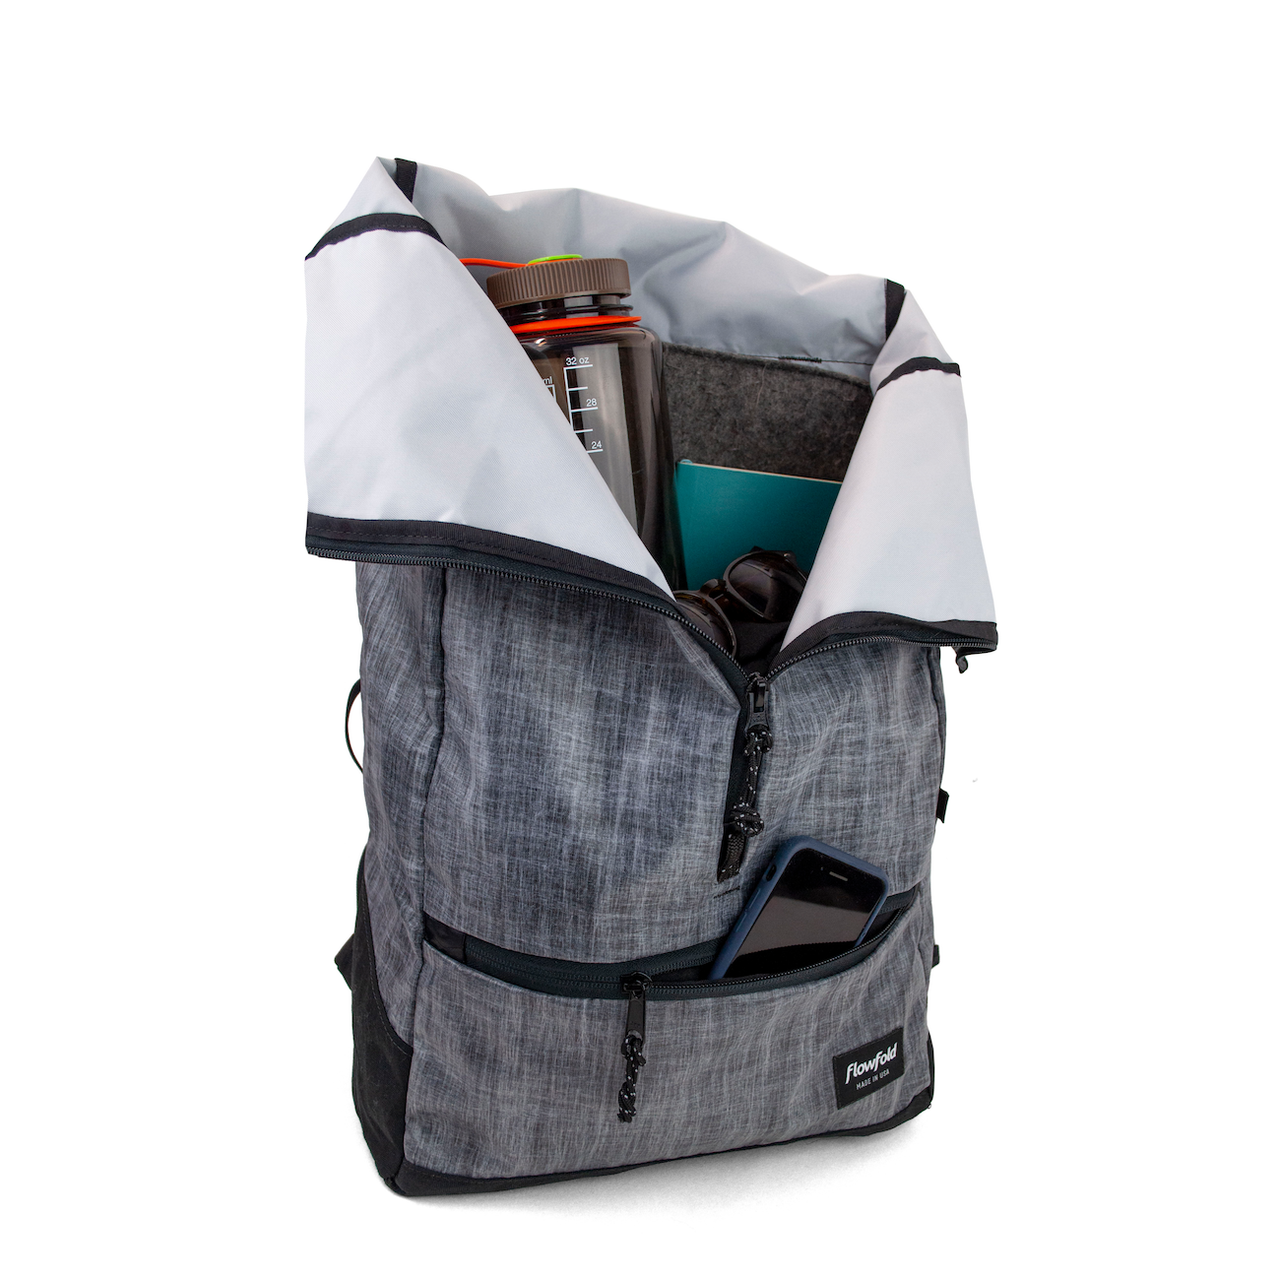 Center Zip Backpack